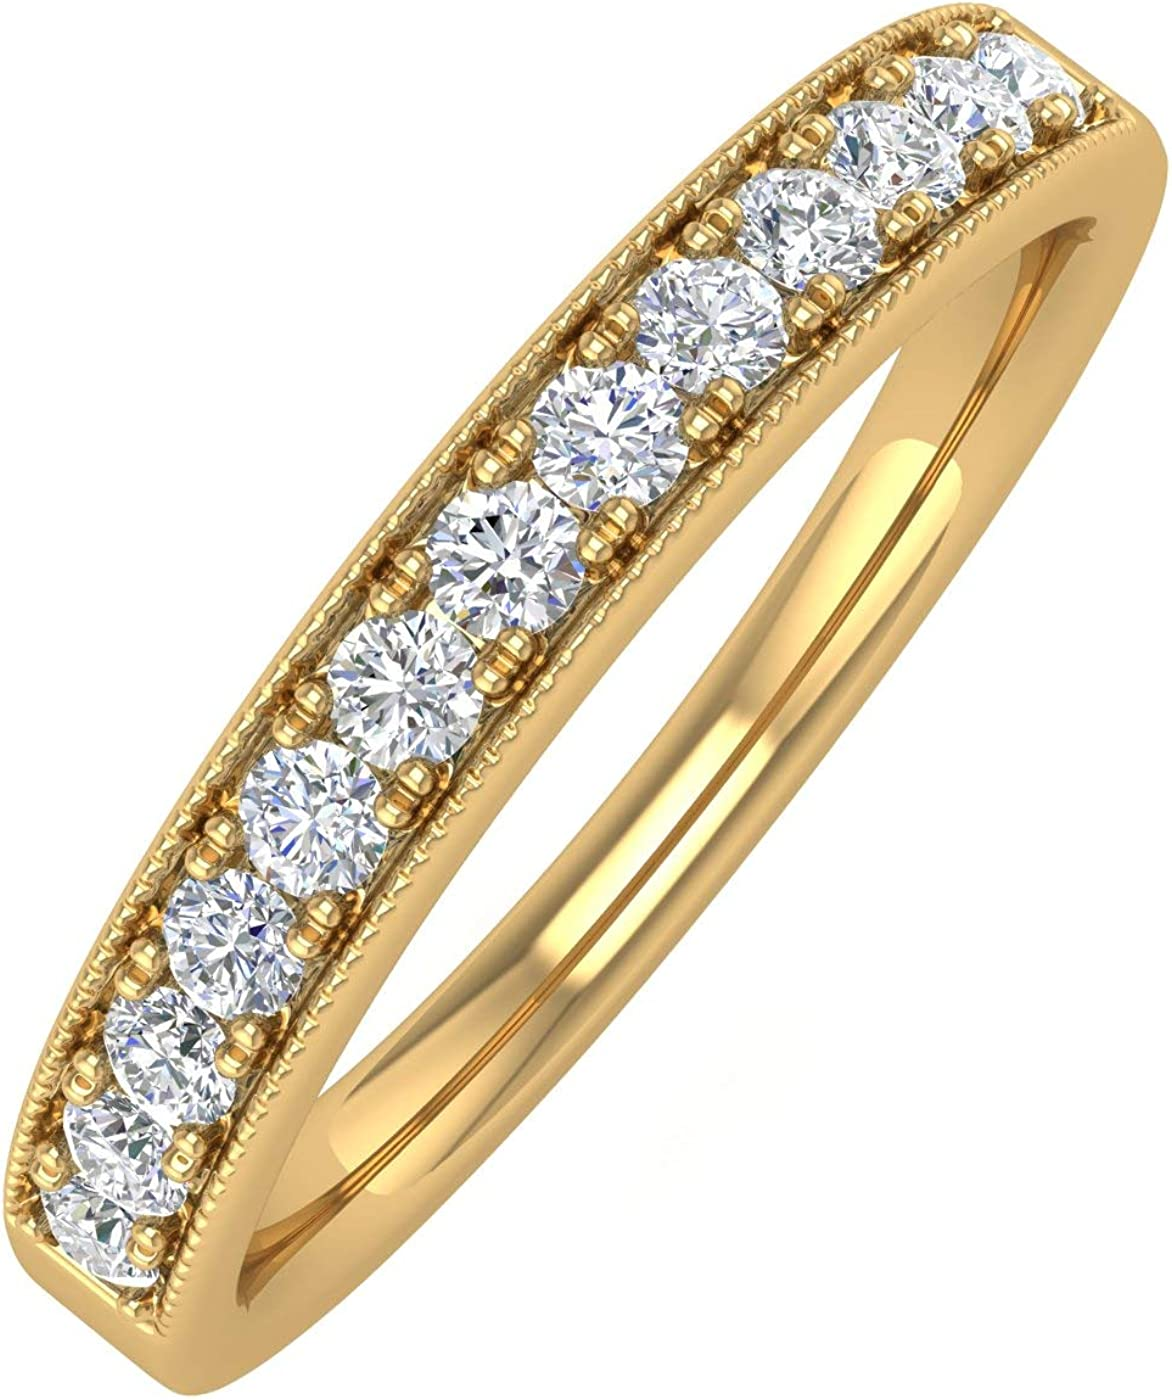 1 4 Carat Prong Set Diamond At the price of surprise New popularity in Wedding Ladies Band Anniversary